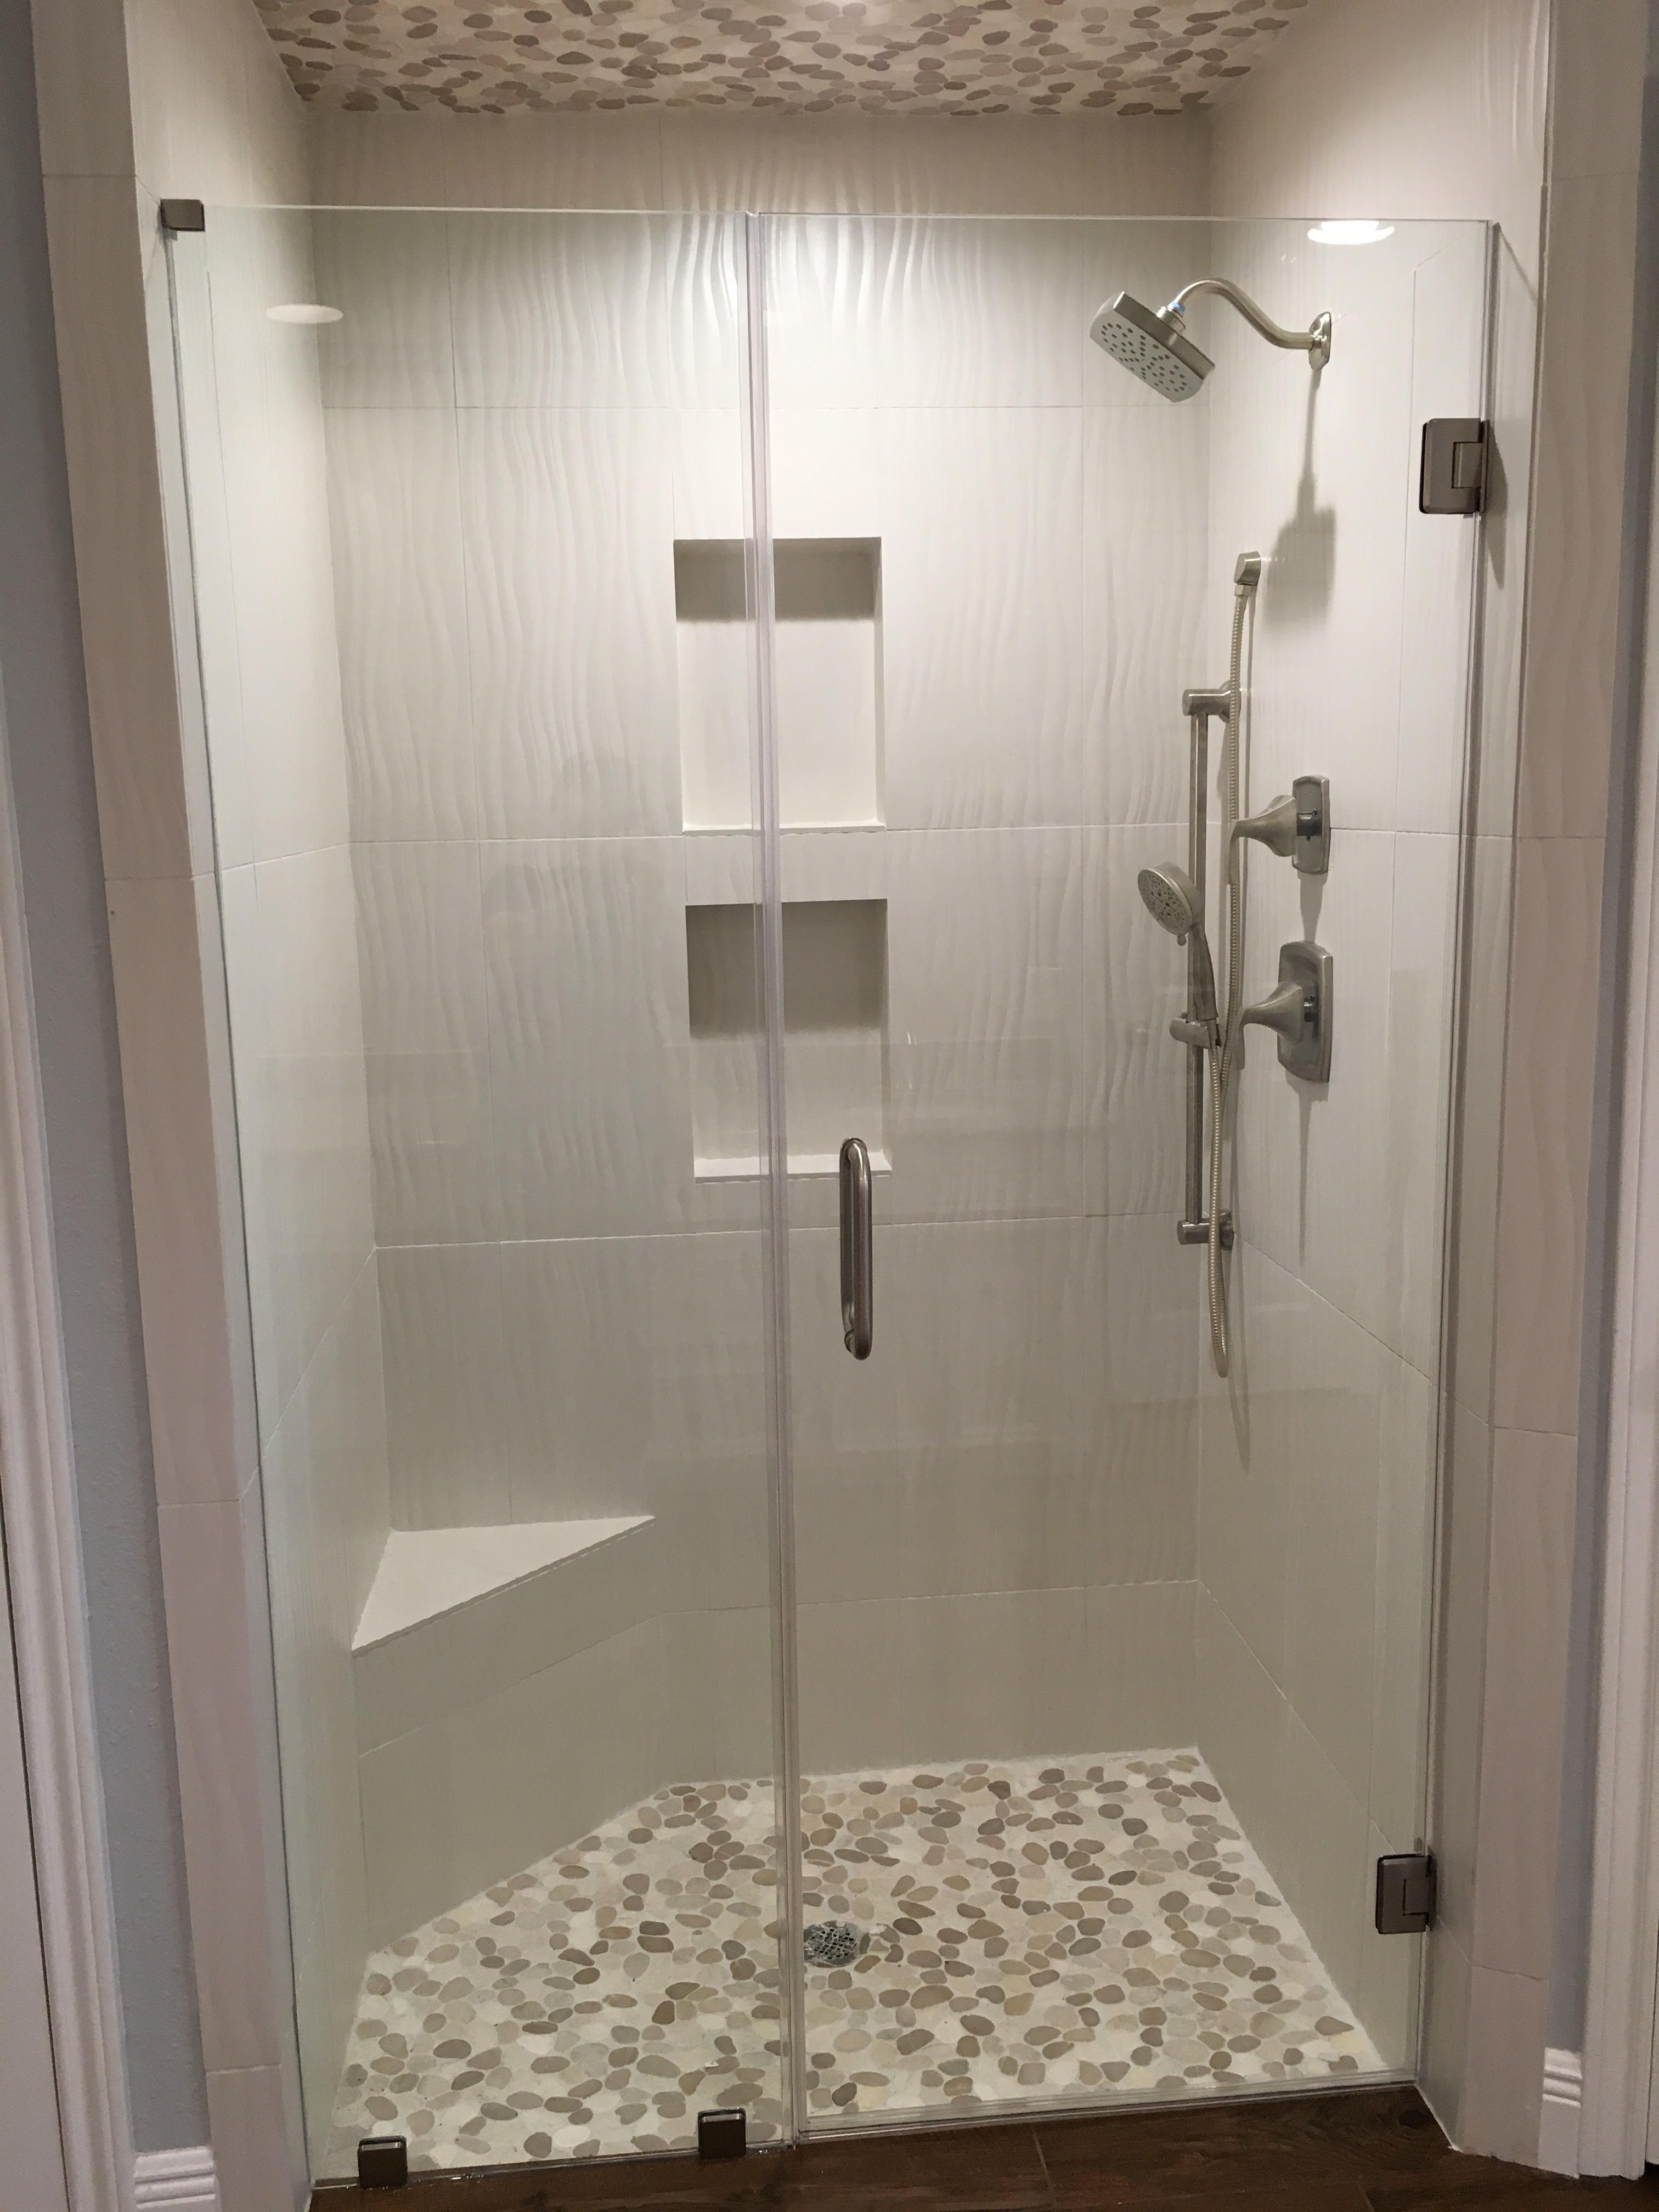 Sliced Java Tan And White Pebble Tile In 2019 Bathroom